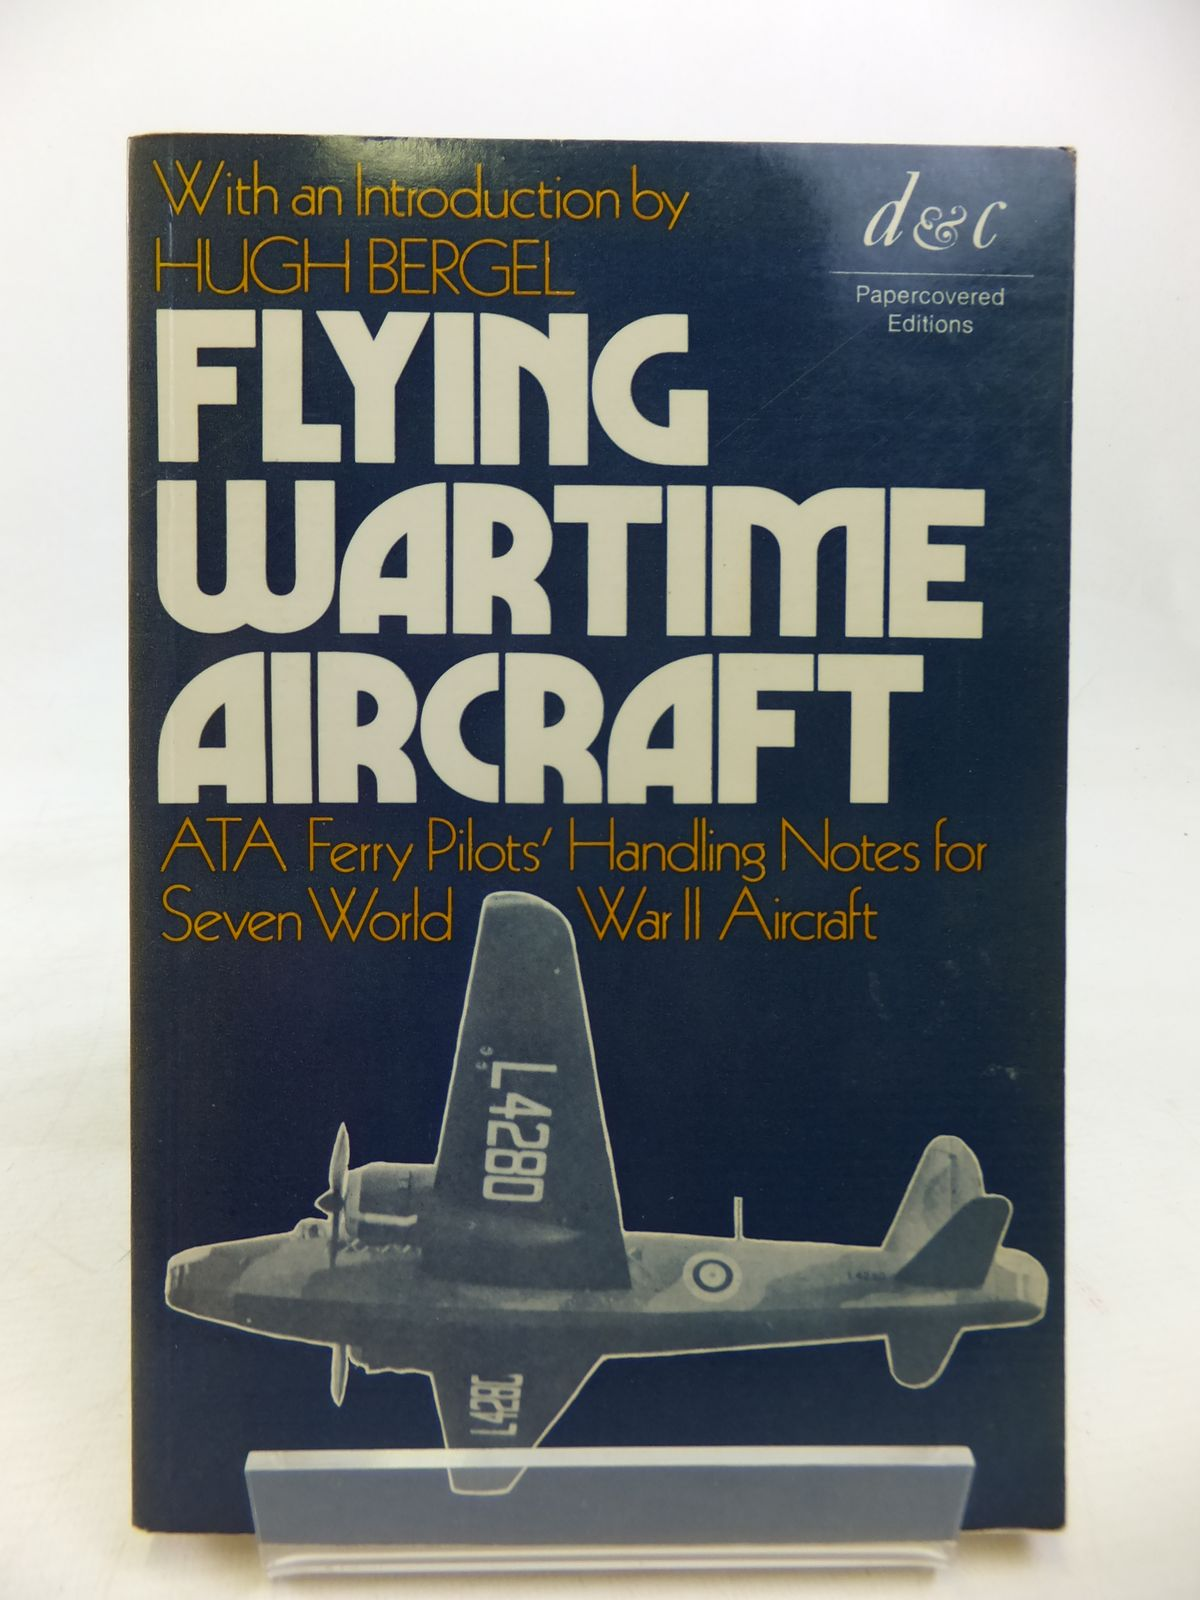 Photo of FLYING WARTIME AIRCRAFT written by Bergel, Hugh published by David & Charles (STOCK CODE: 1810545)  for sale by Stella & Rose's Books